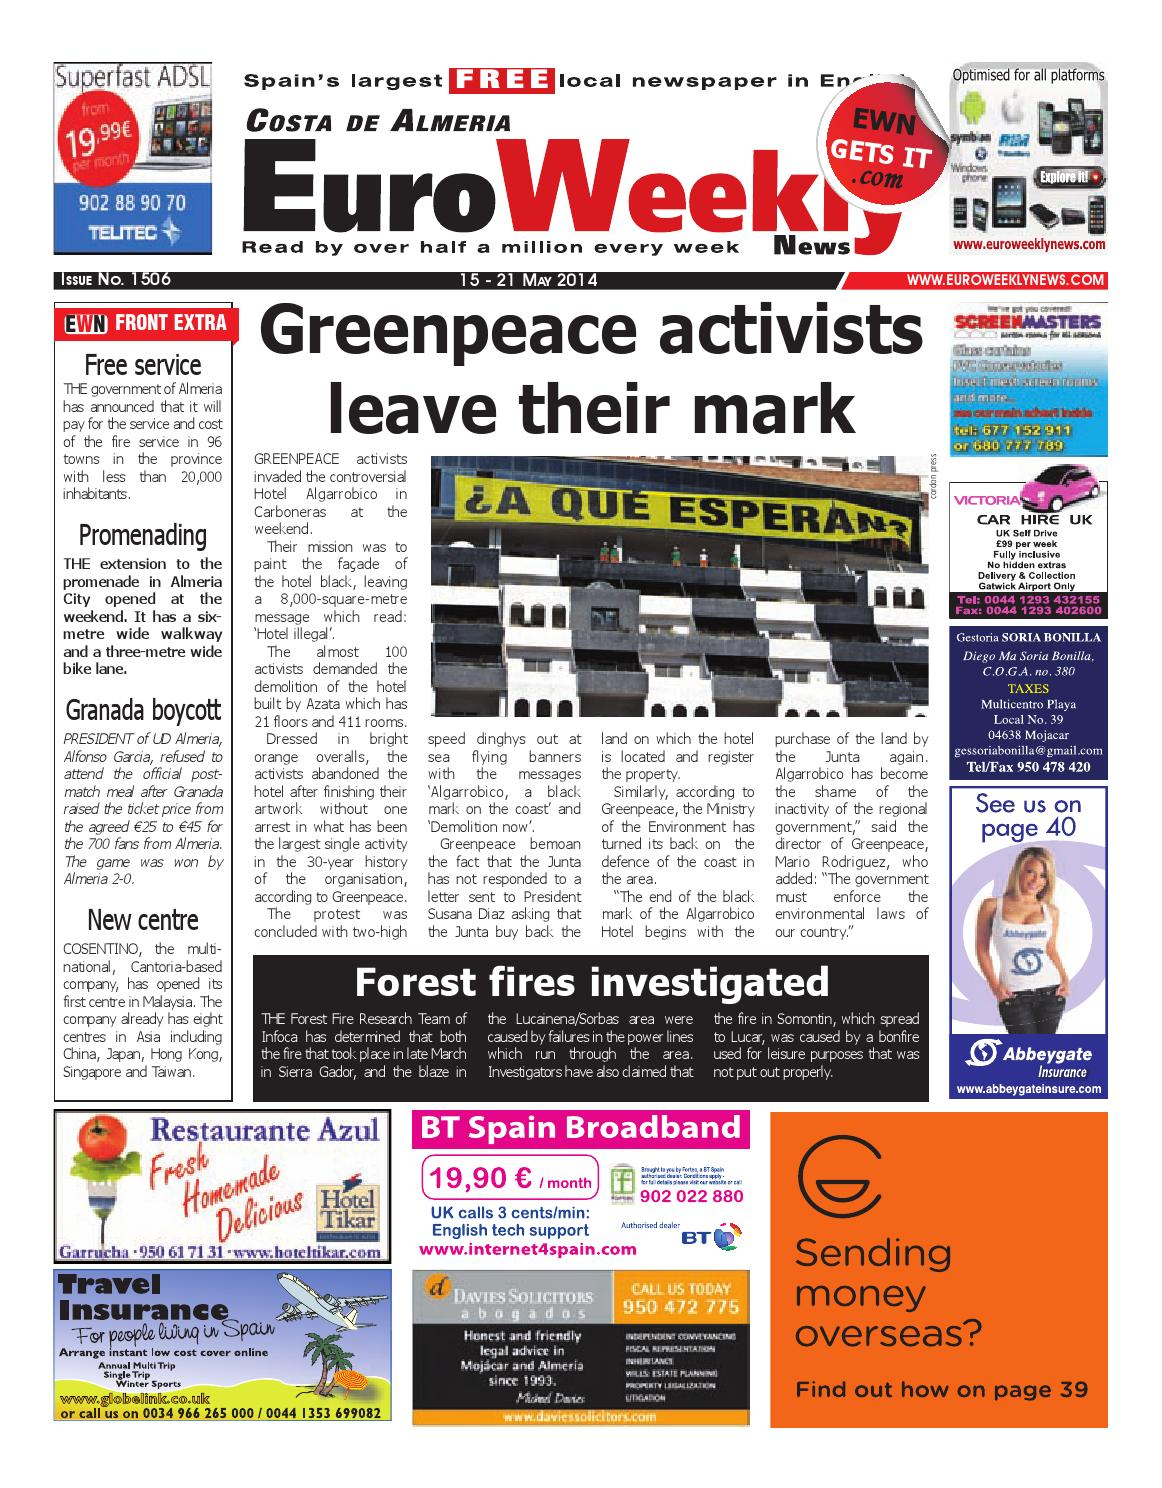 Euro Weekly News Costa De Almeria 15 21 May 2014 Issue 1506 By  # Muebles Rogelio Nerja